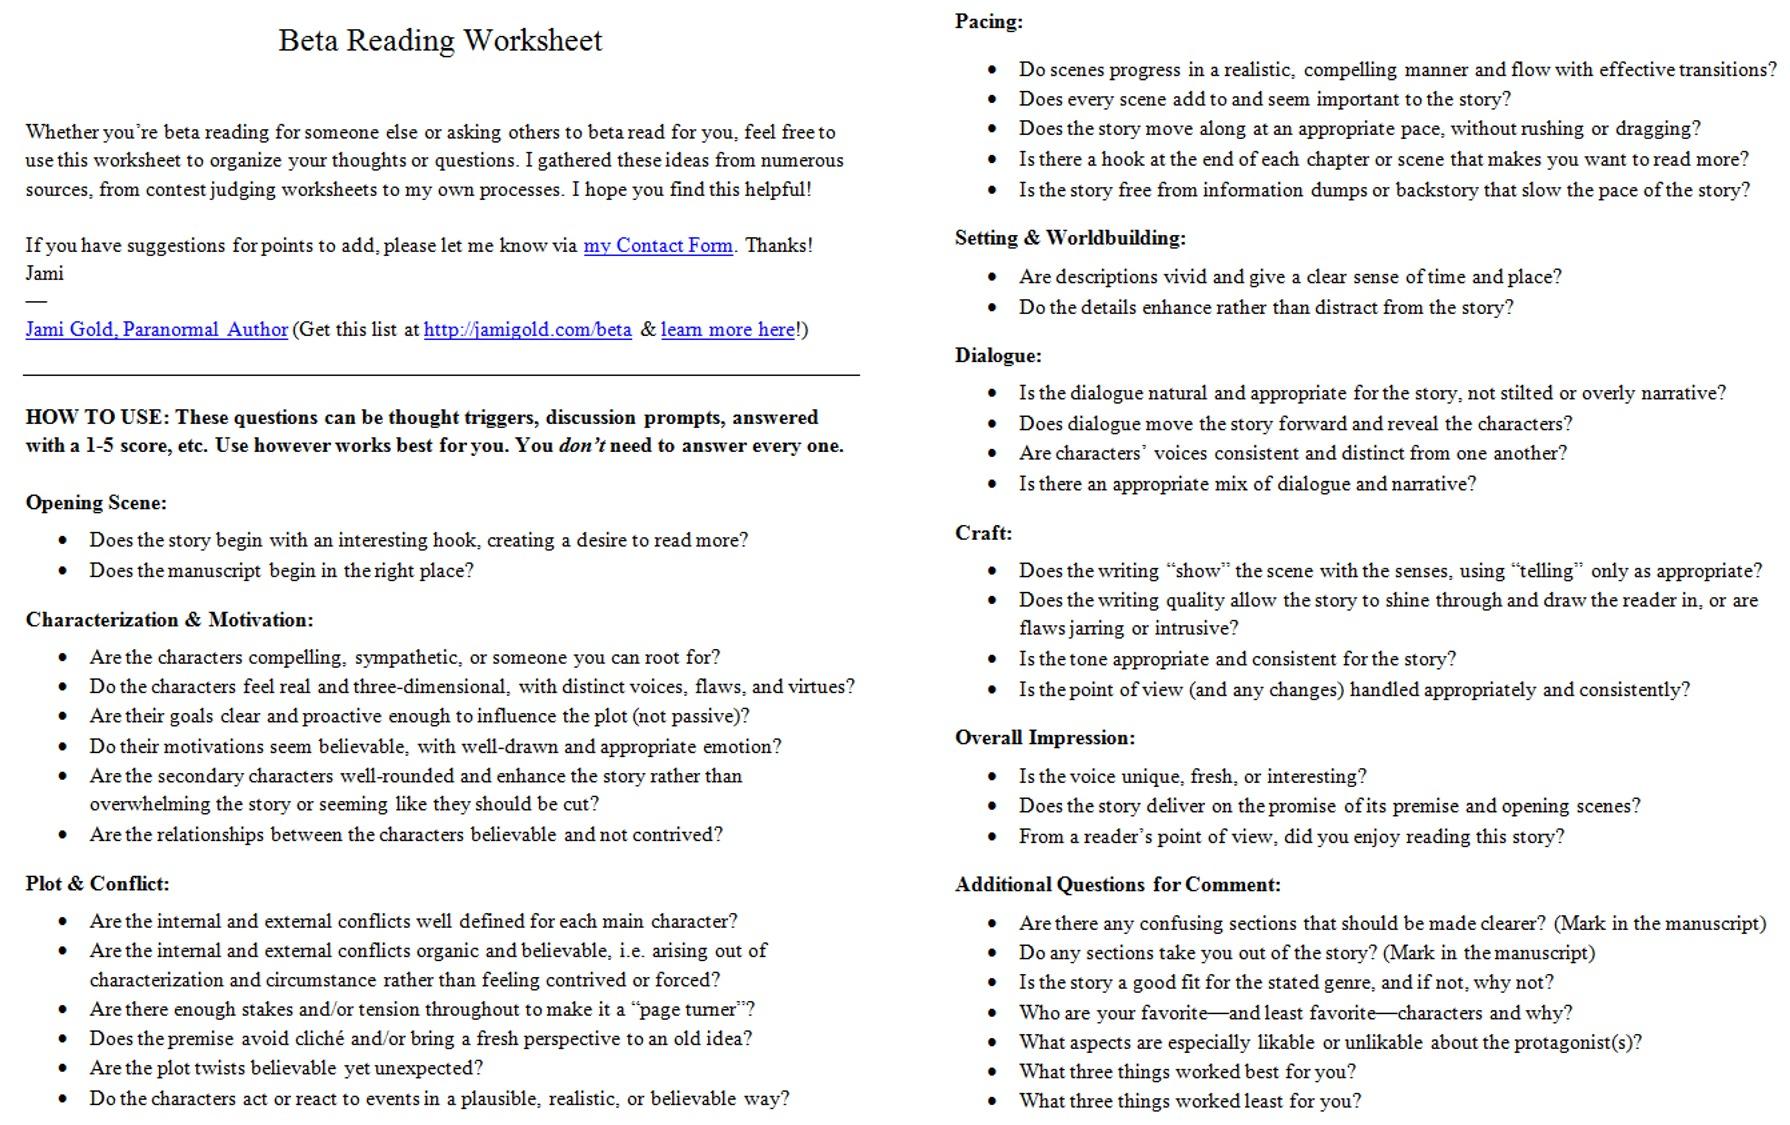 Aldiablosus  Mesmerizing Worksheets For Writers  Jami Gold Paranormal Author With Great Screen Shot Of The Twopage Beta Reading Worksheet With Comely Energy Sources Worksheets Also Animal Life Cycle Worksheet In Addition Worksheet Maker Software And Worksheet Algebraic Expressions As Well As Printable Grade  Math Worksheets Additionally Helping Verbs And Main Verbs Worksheets From Jamigoldcom With Aldiablosus  Great Worksheets For Writers  Jami Gold Paranormal Author With Comely Screen Shot Of The Twopage Beta Reading Worksheet And Mesmerizing Energy Sources Worksheets Also Animal Life Cycle Worksheet In Addition Worksheet Maker Software From Jamigoldcom